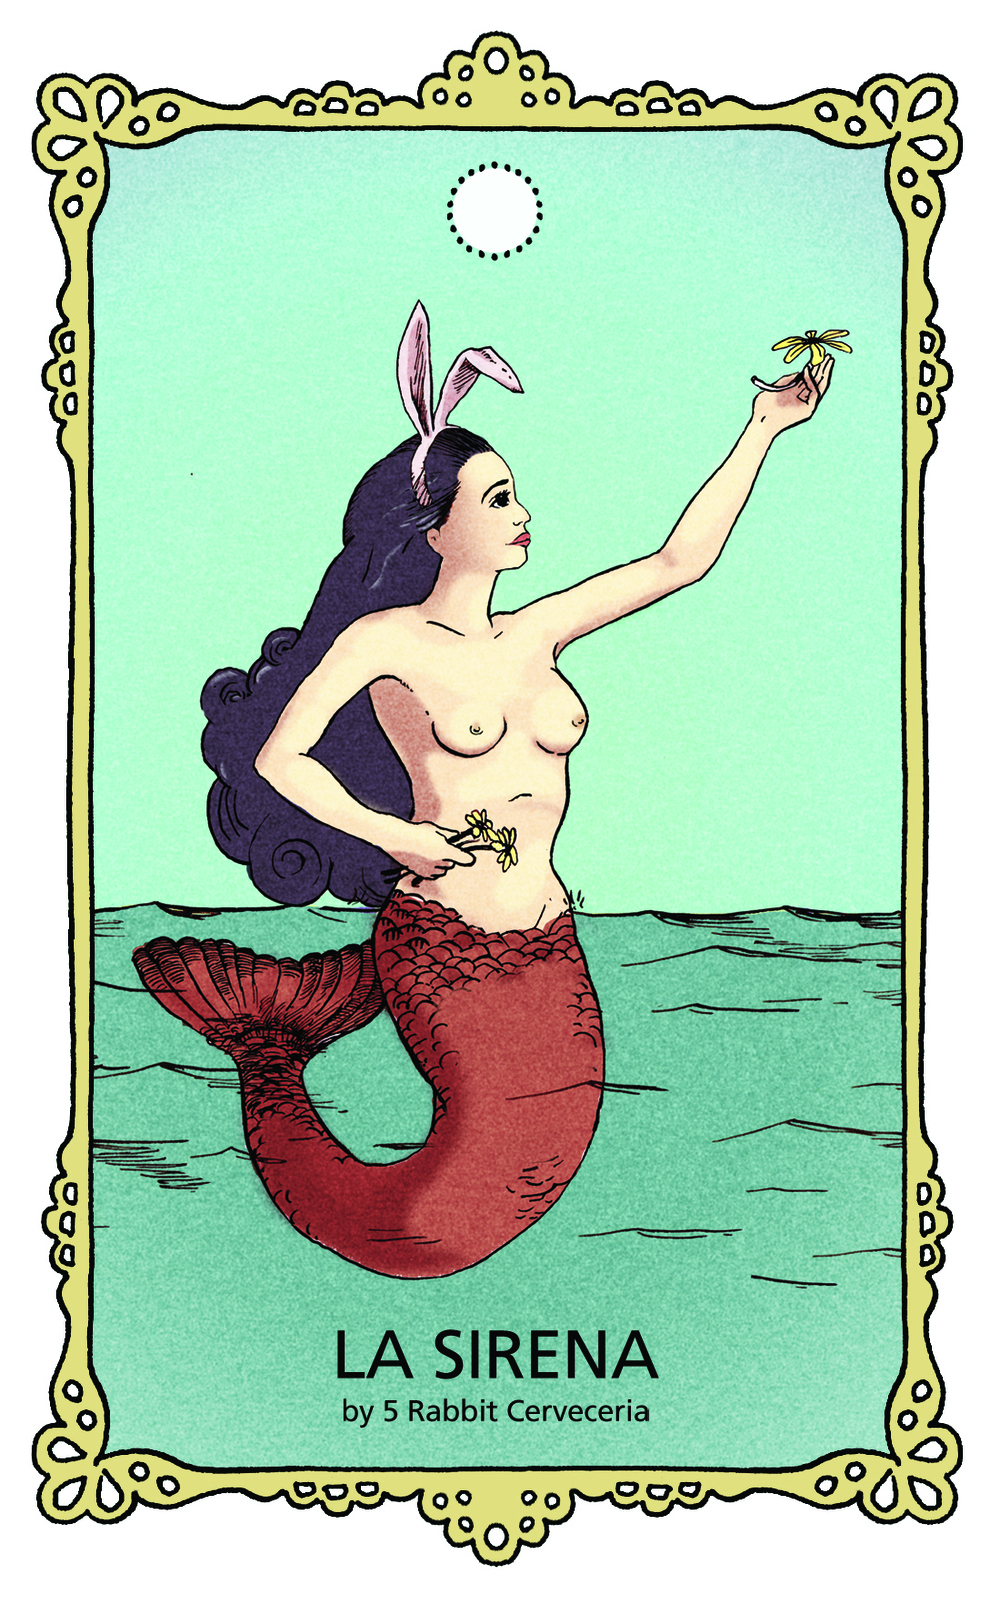 5rabbit_Mermaid_final01_110314.jpg